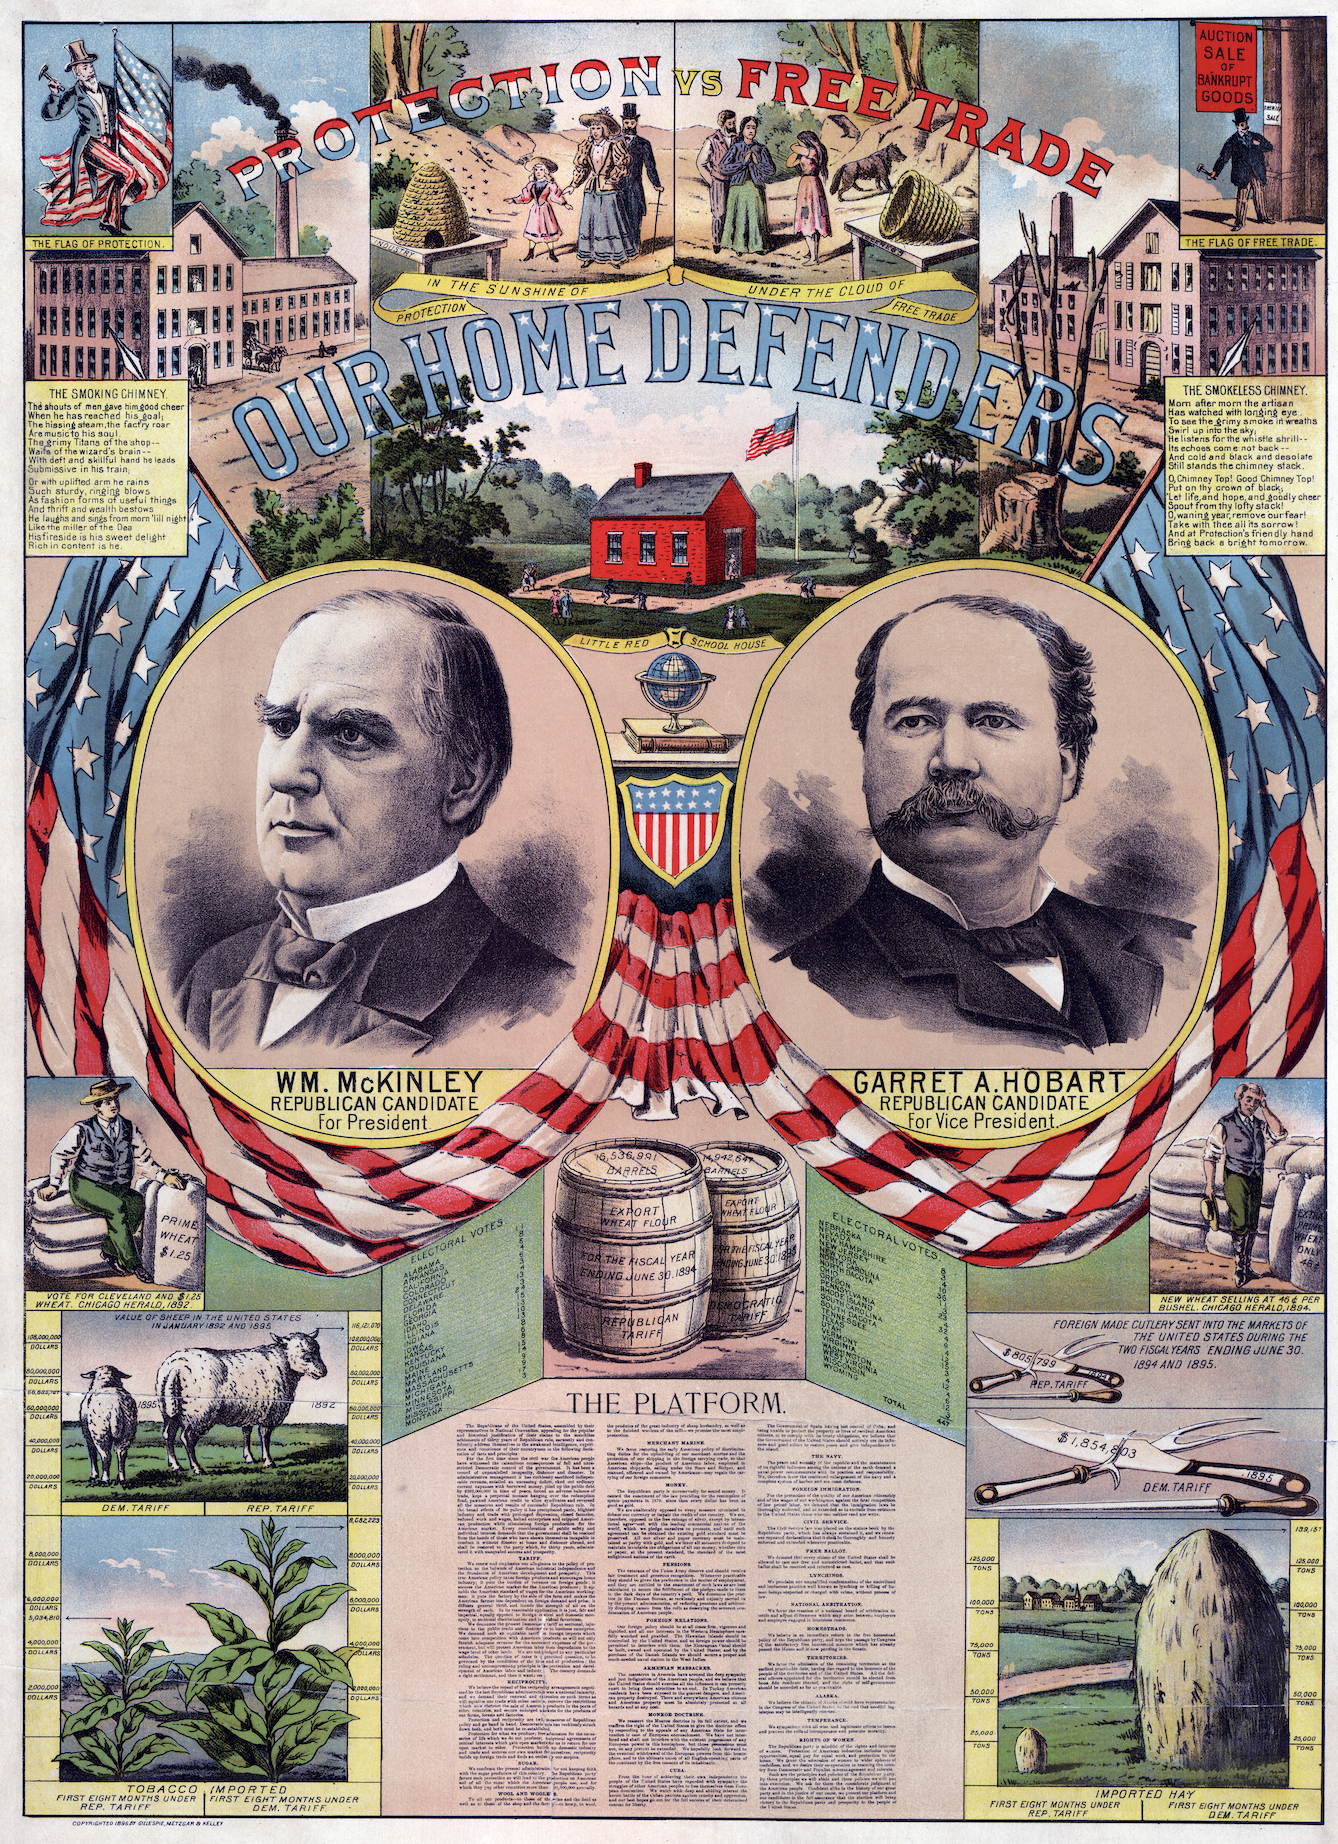 etched portraits of two men surrounded by an american flag bunting. lots of small print below and vignettes of their accomplishments